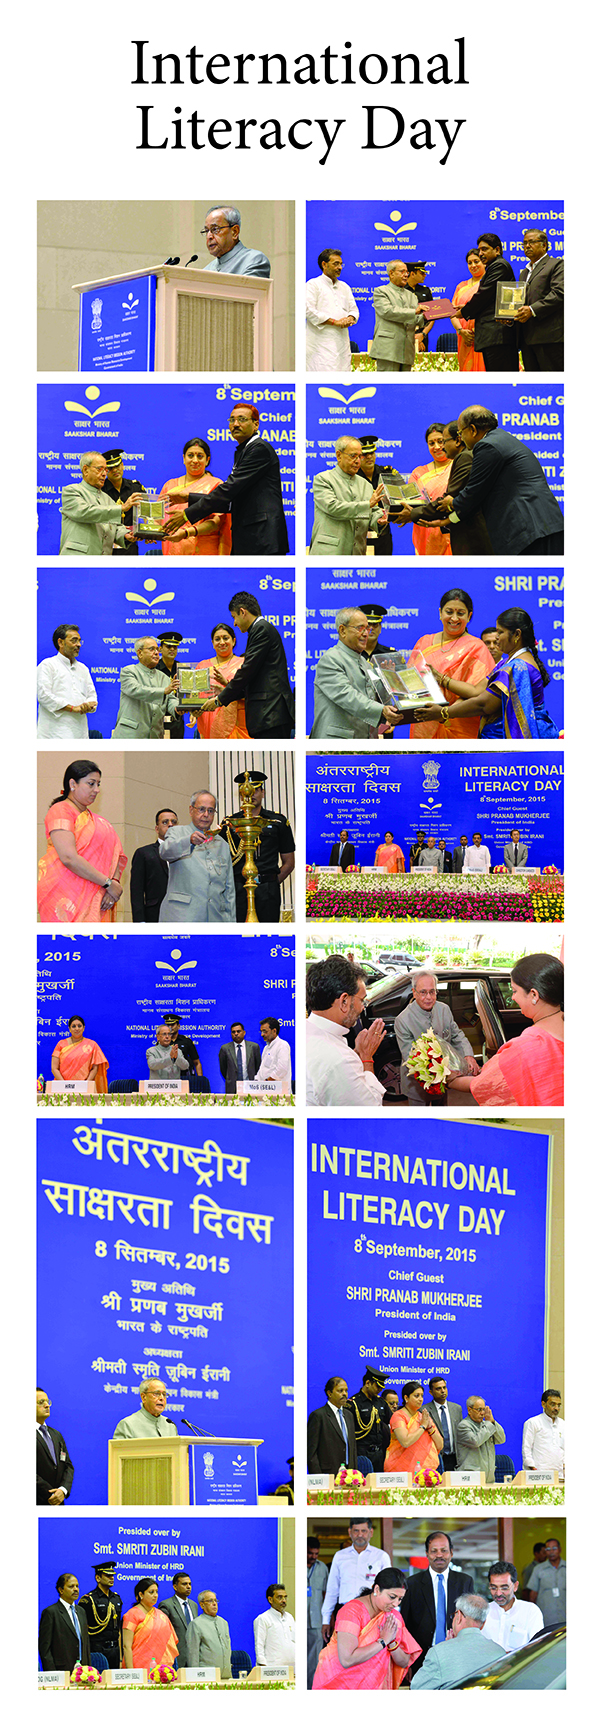 On the occasion of International Literacy Day President Pranab Mukherjee and Union Minister of Human Resource Development Smriti Irani gives Saakshar Bharat Awards for best performing institutions.